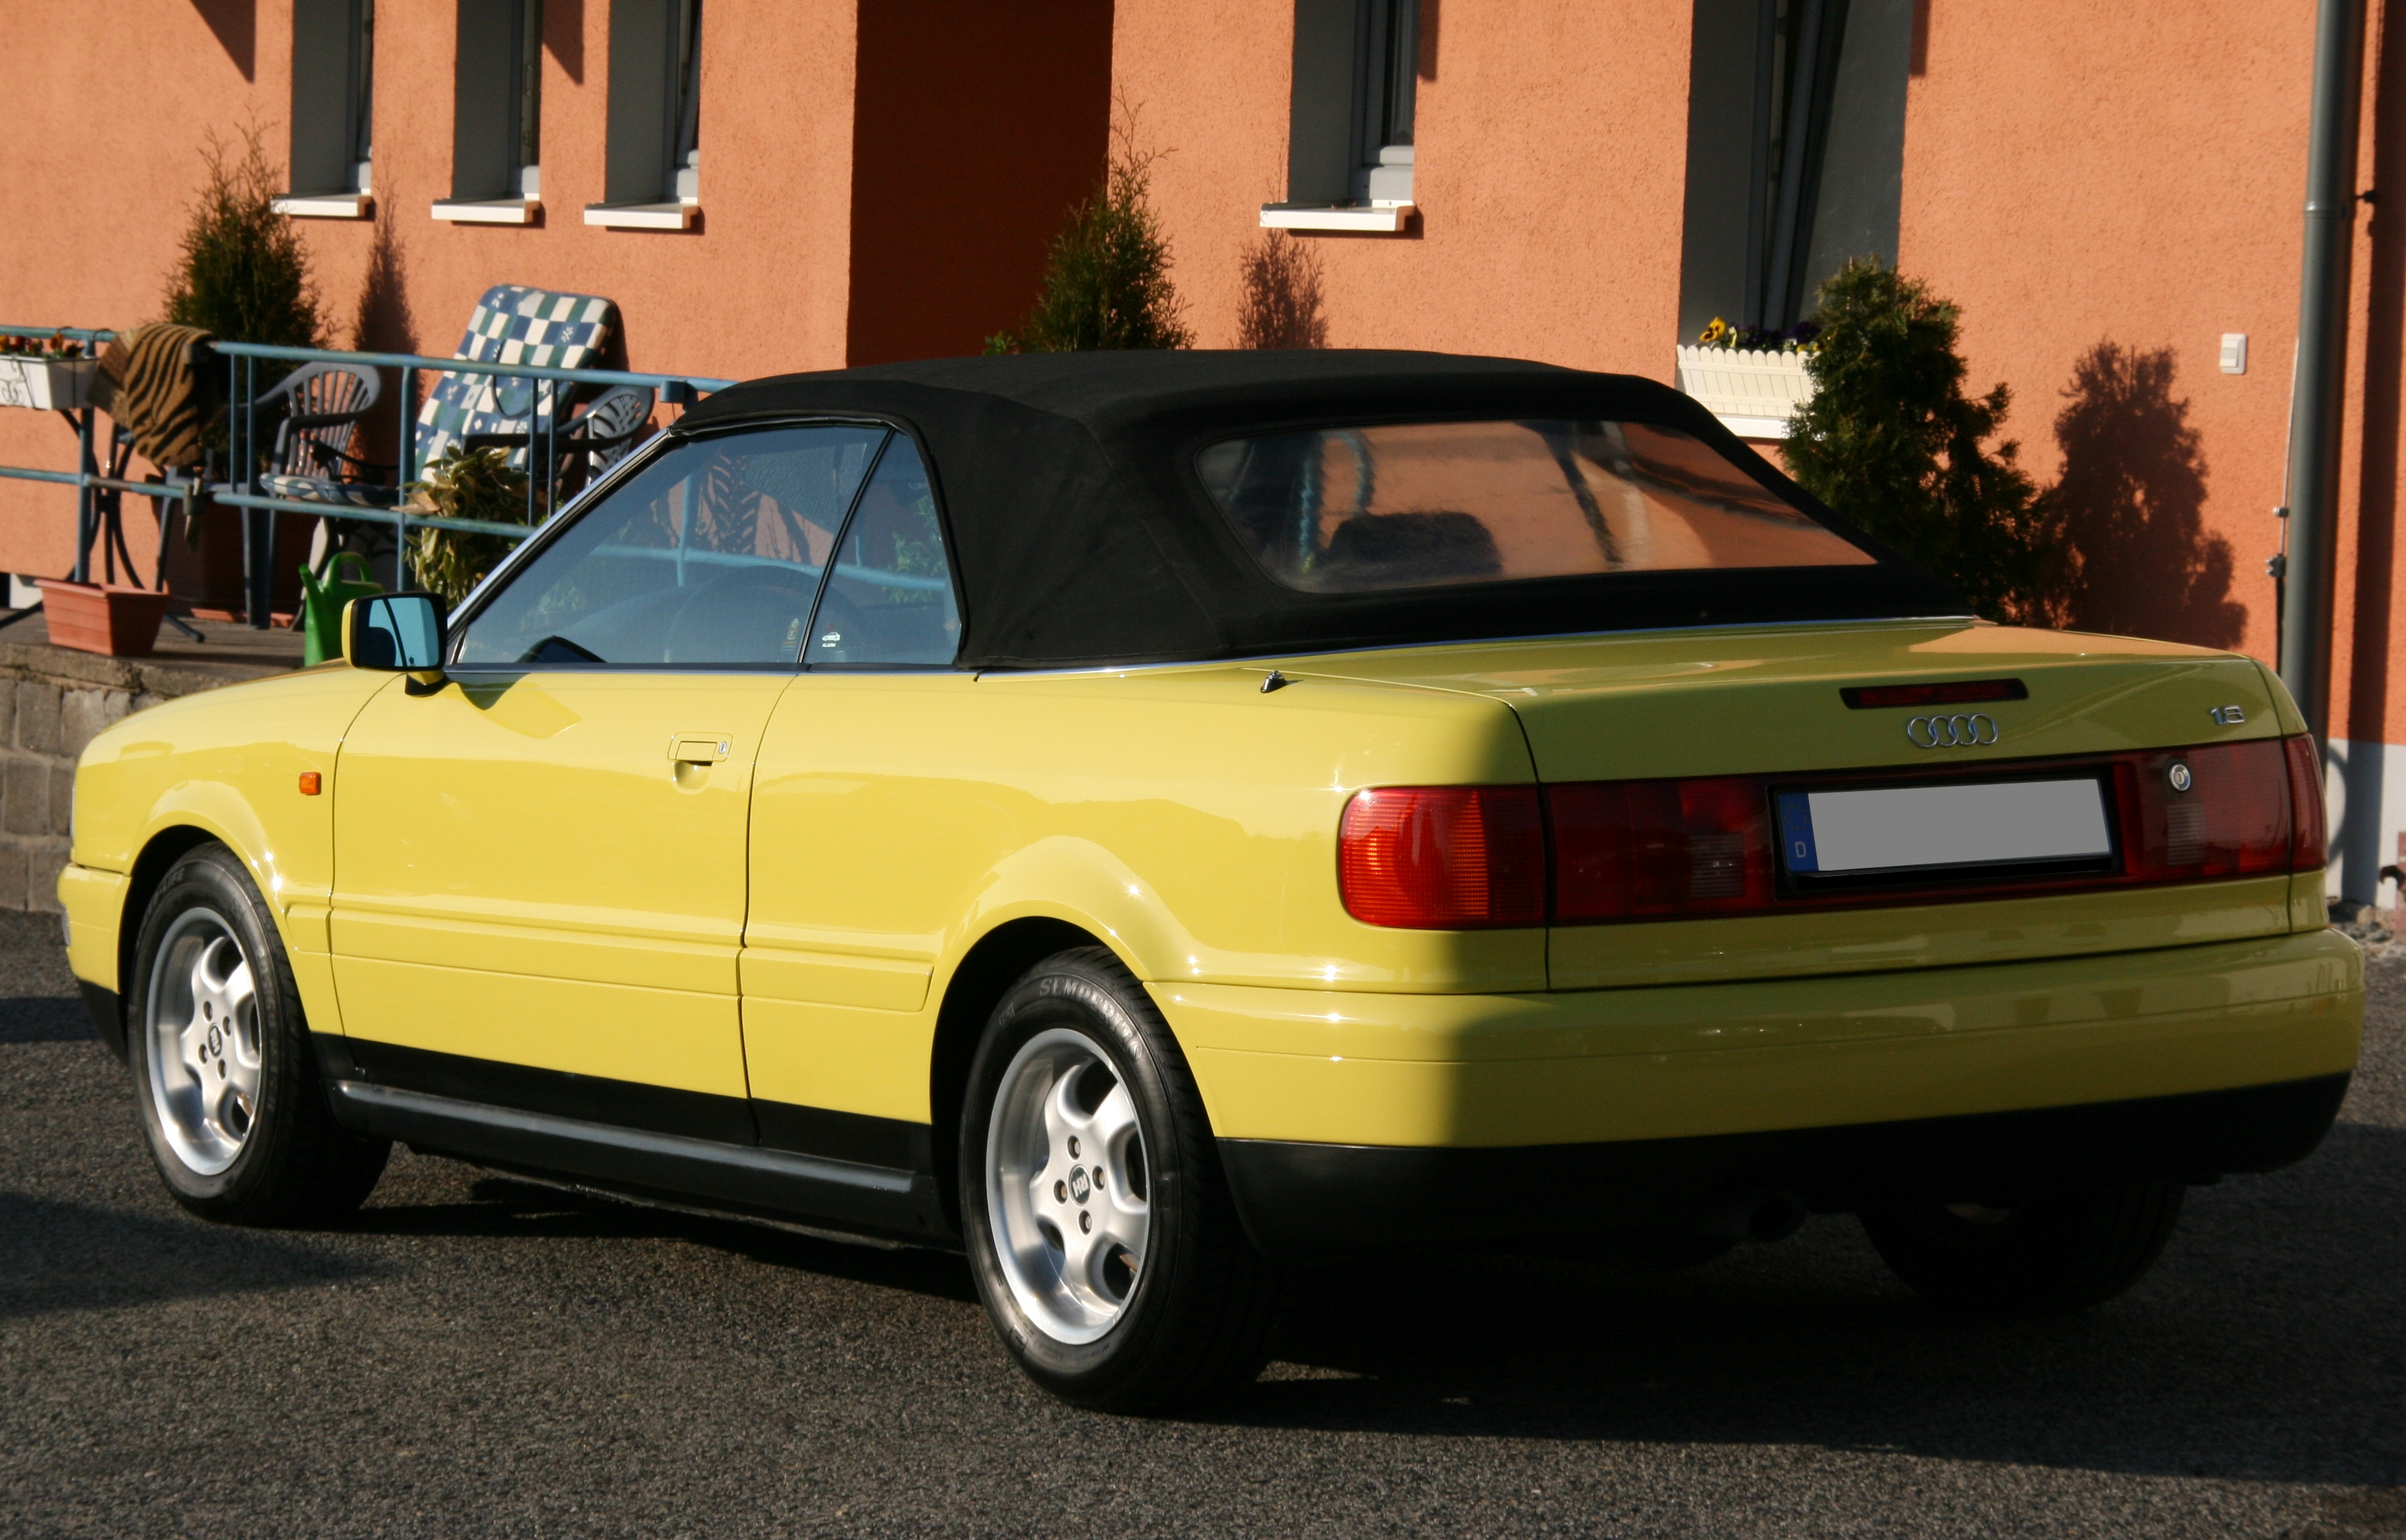 audi 80 cabrio photos 14 on better parts ltd. Black Bedroom Furniture Sets. Home Design Ideas